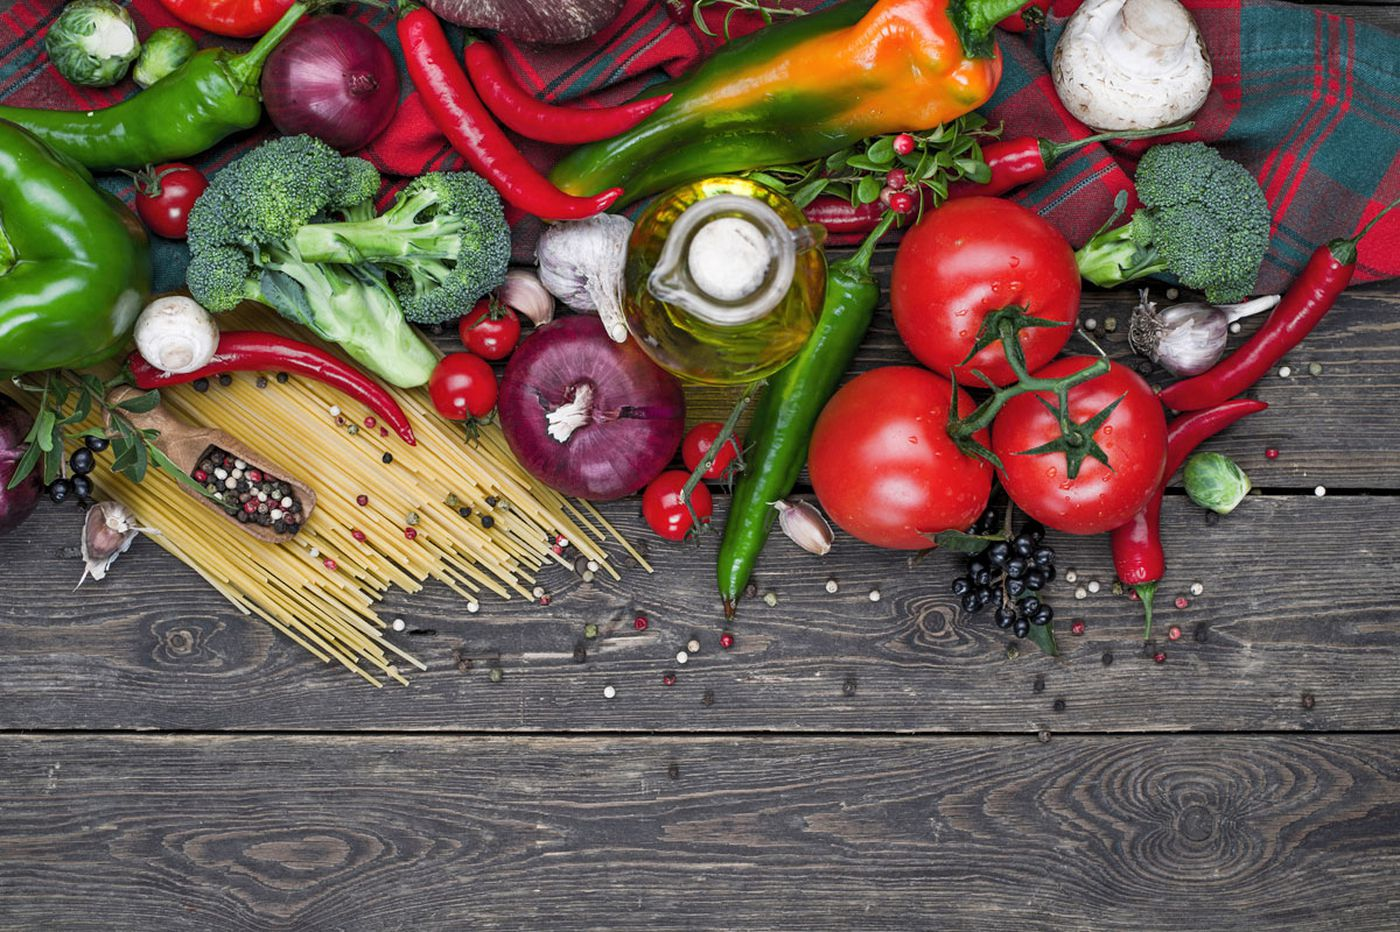 Major study on Mediterranean diet was retracted, but this cardiologist recommends this way of eating